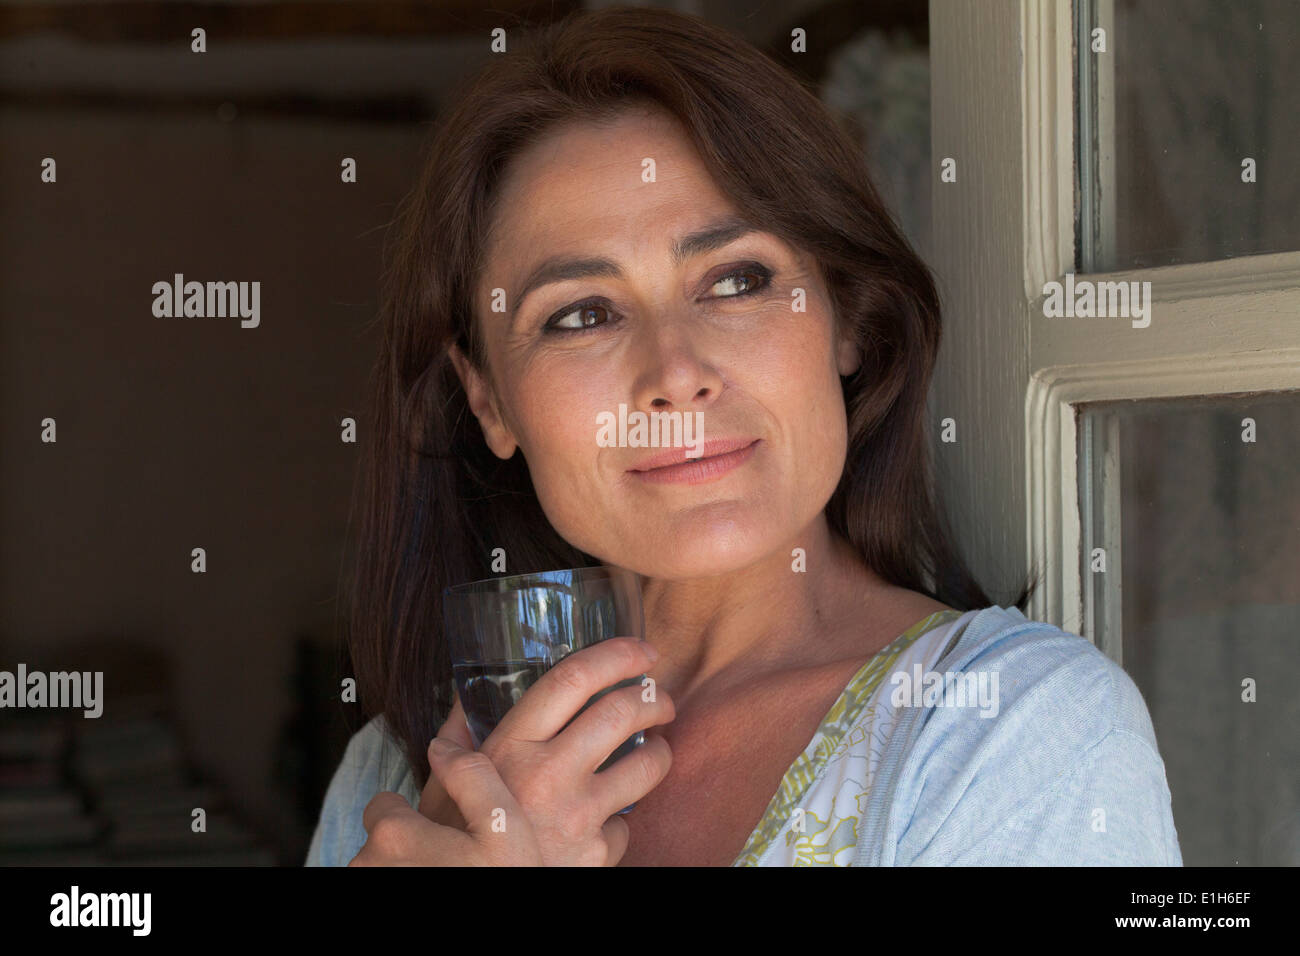 Portrait of mature adult woman with drinking glass - Stock Image